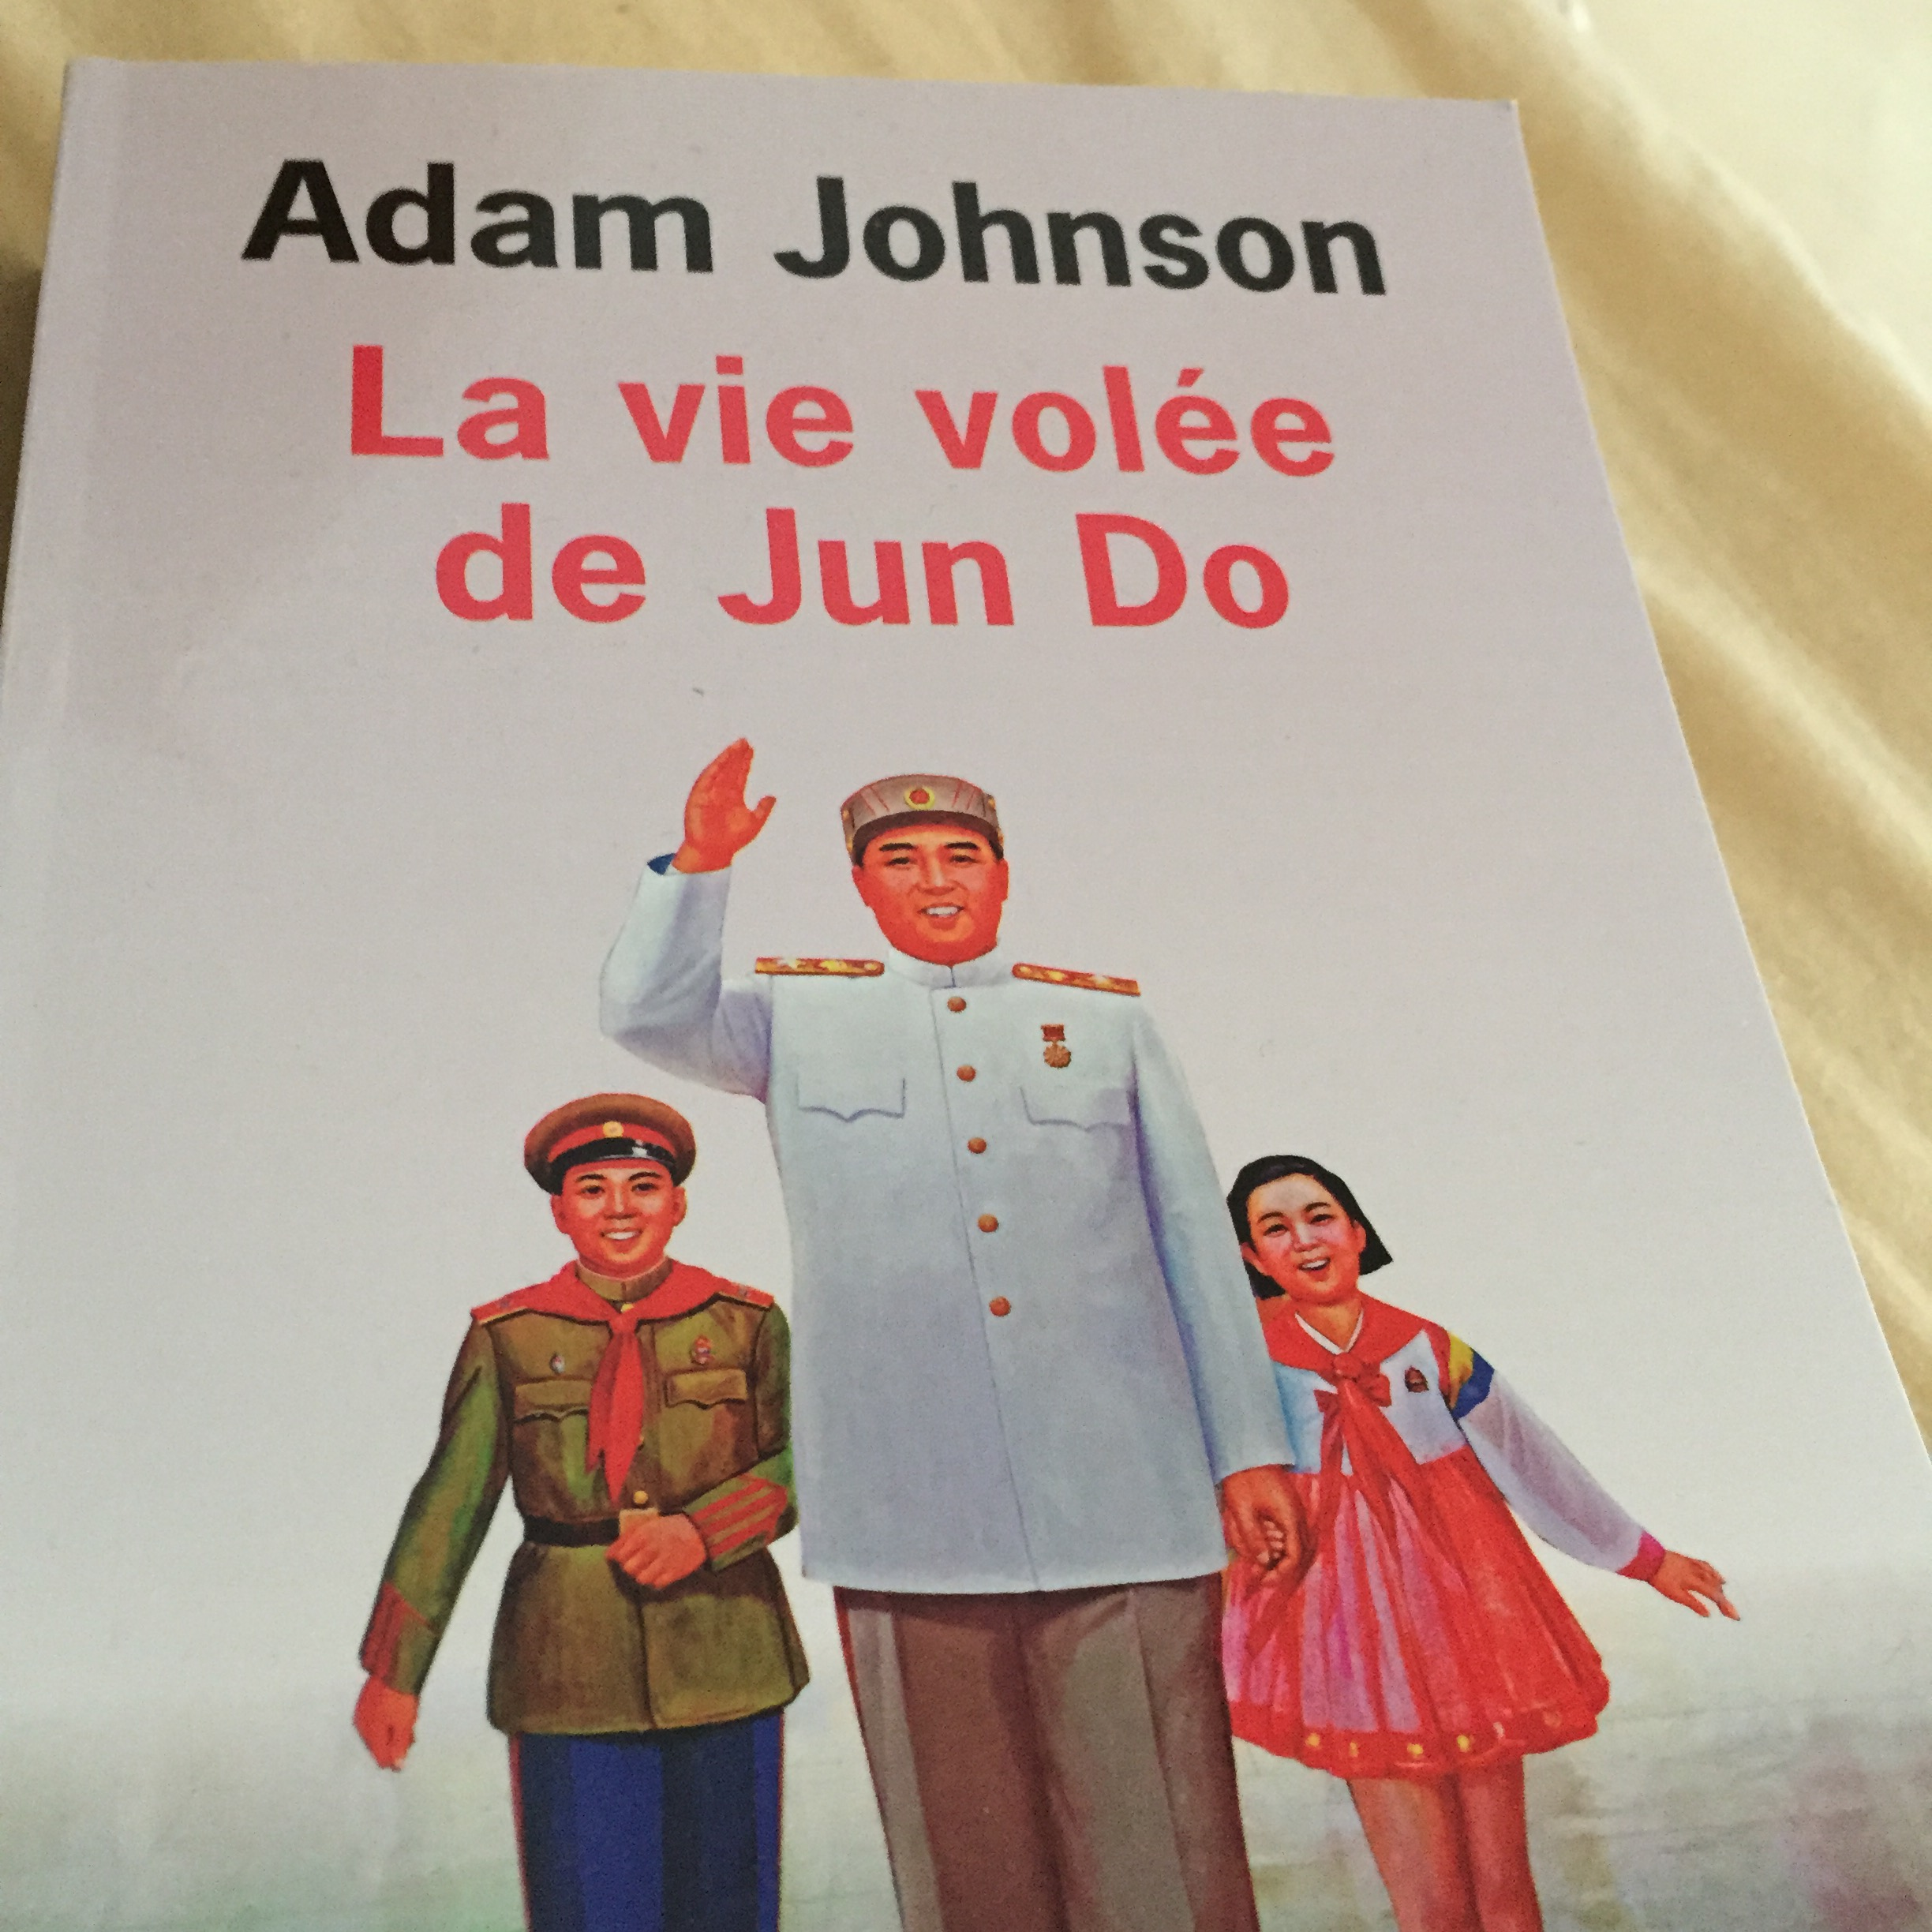 La vie volée de Jun Do avis